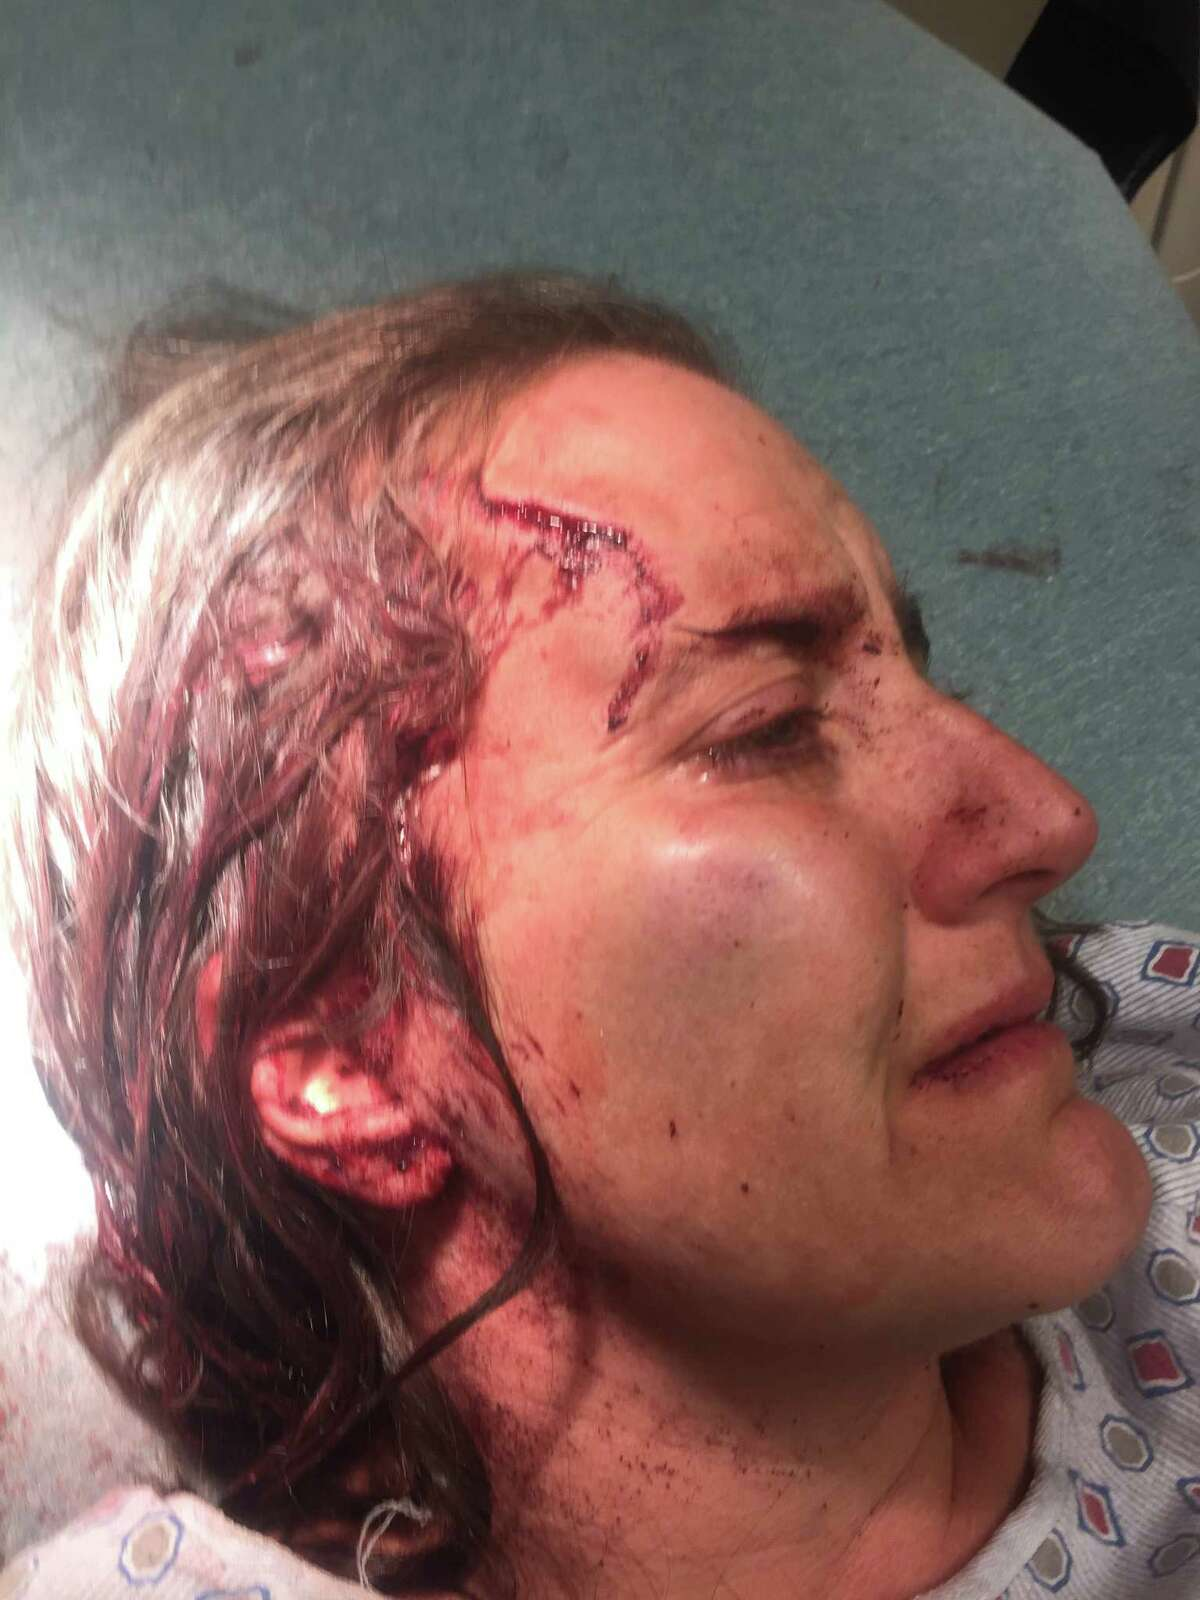 Nicola Cottone's head was split open by Schenectady police lieutenant whose excessive force was documented by the department. (Provided)